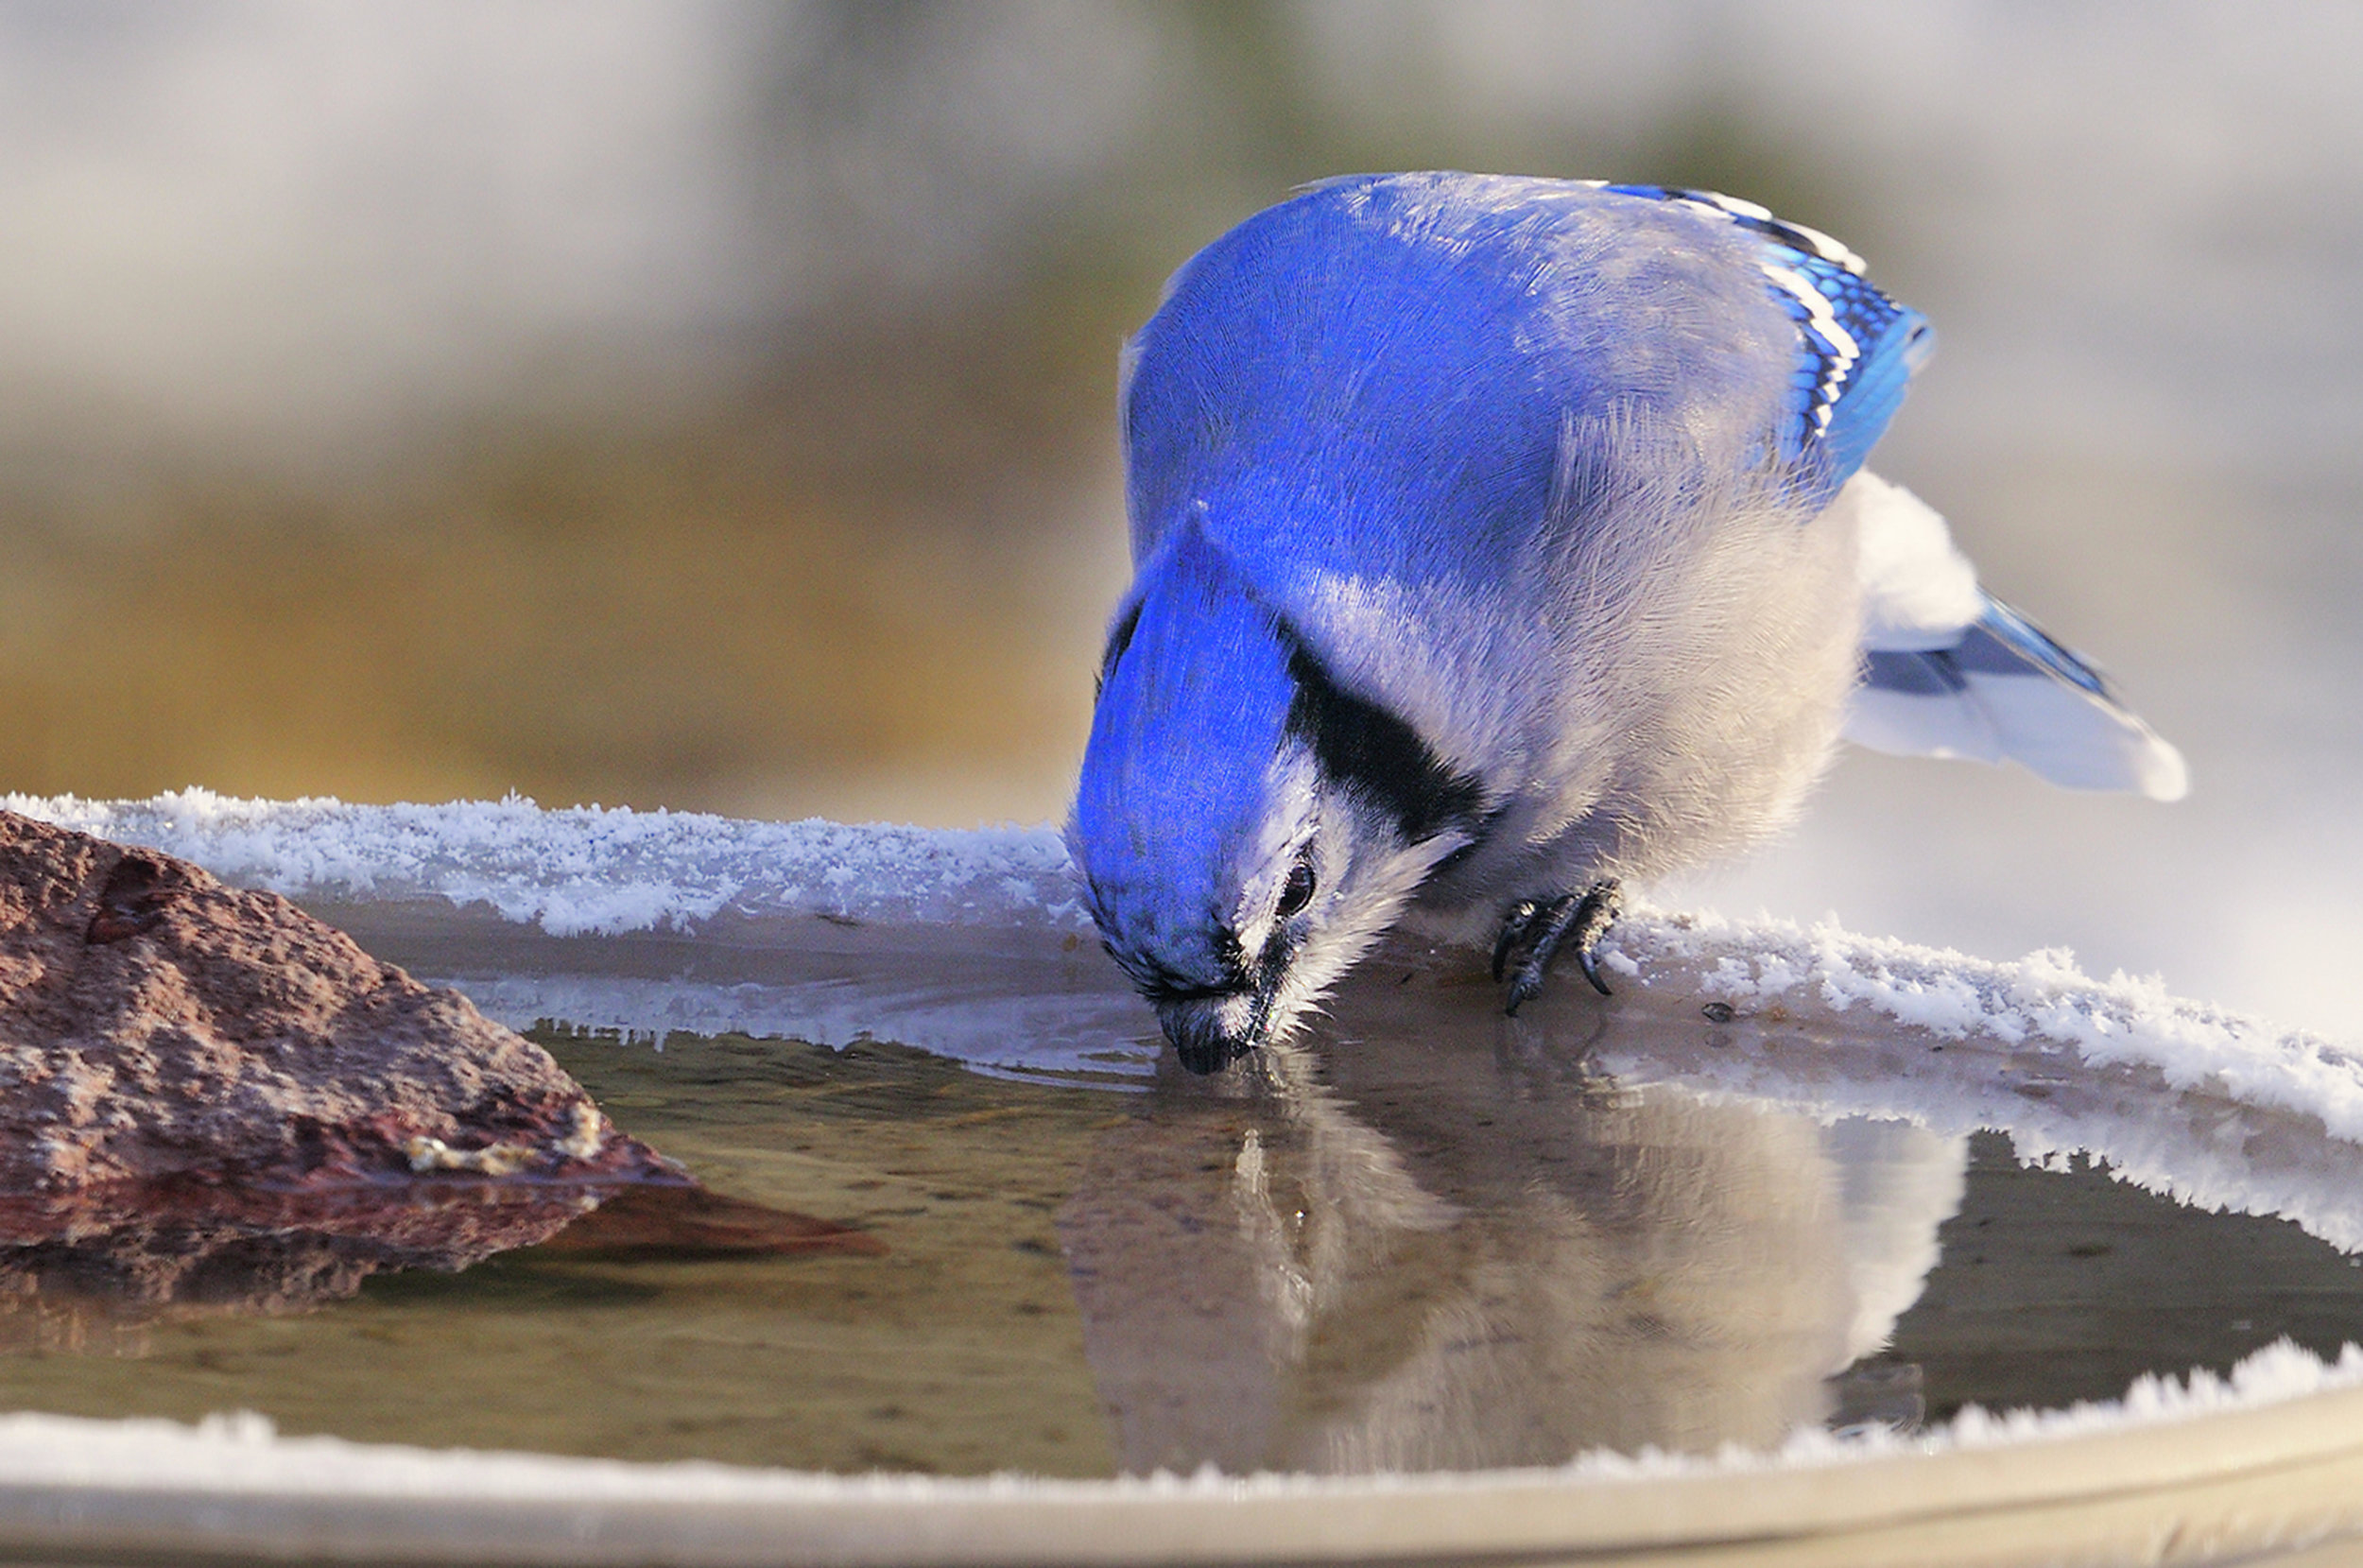 A blue jay drinks from a heated bird bath. Bird enthusiasts can attract more birds to their property by employing a heated water source.